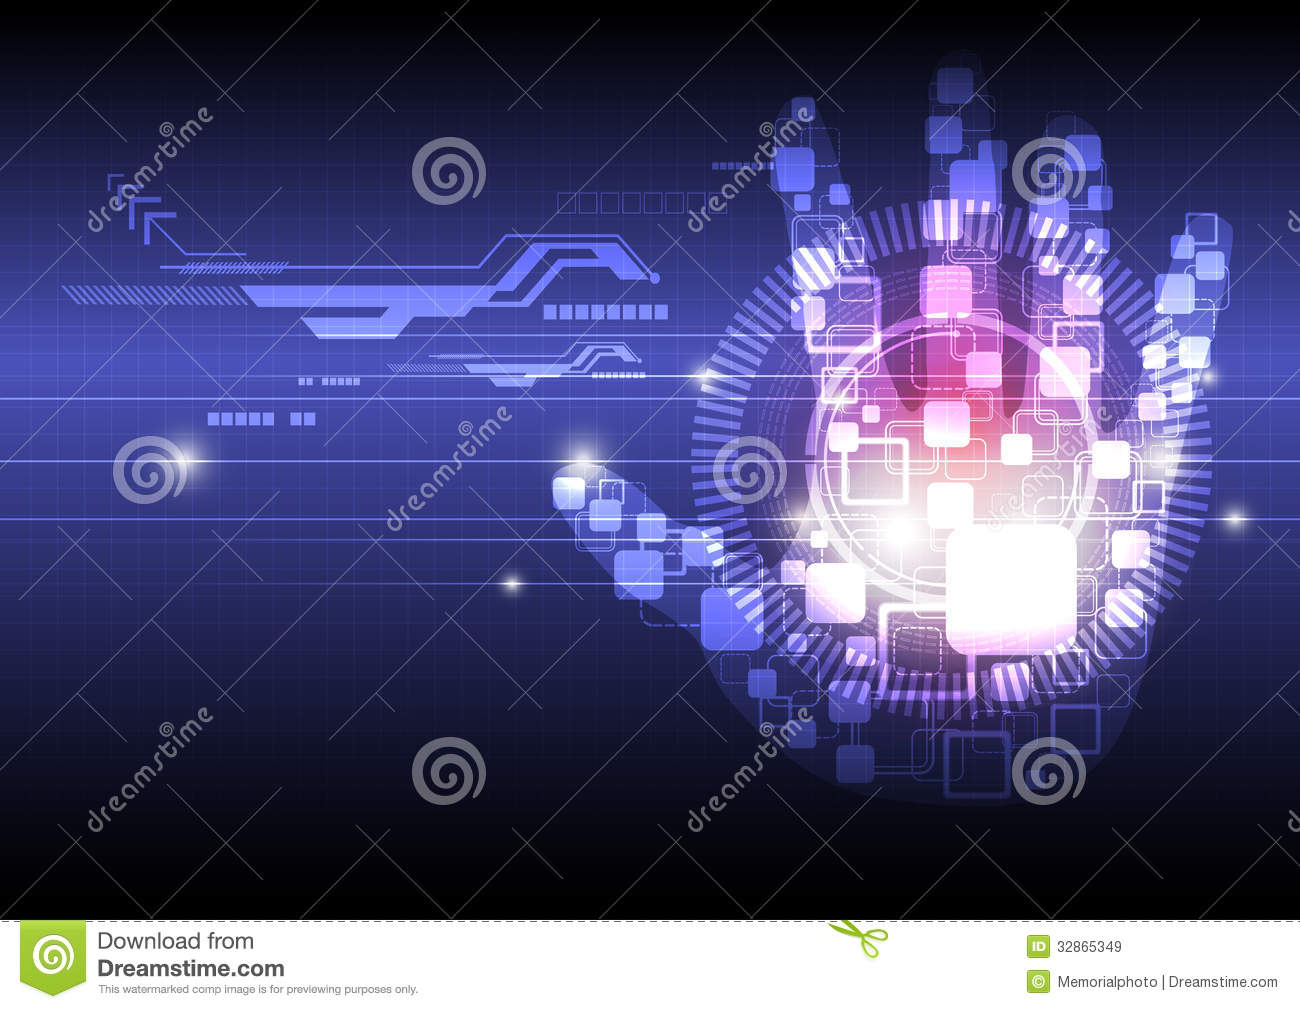 Digital Hand Technology Background Royalty Free Stock Images  Image